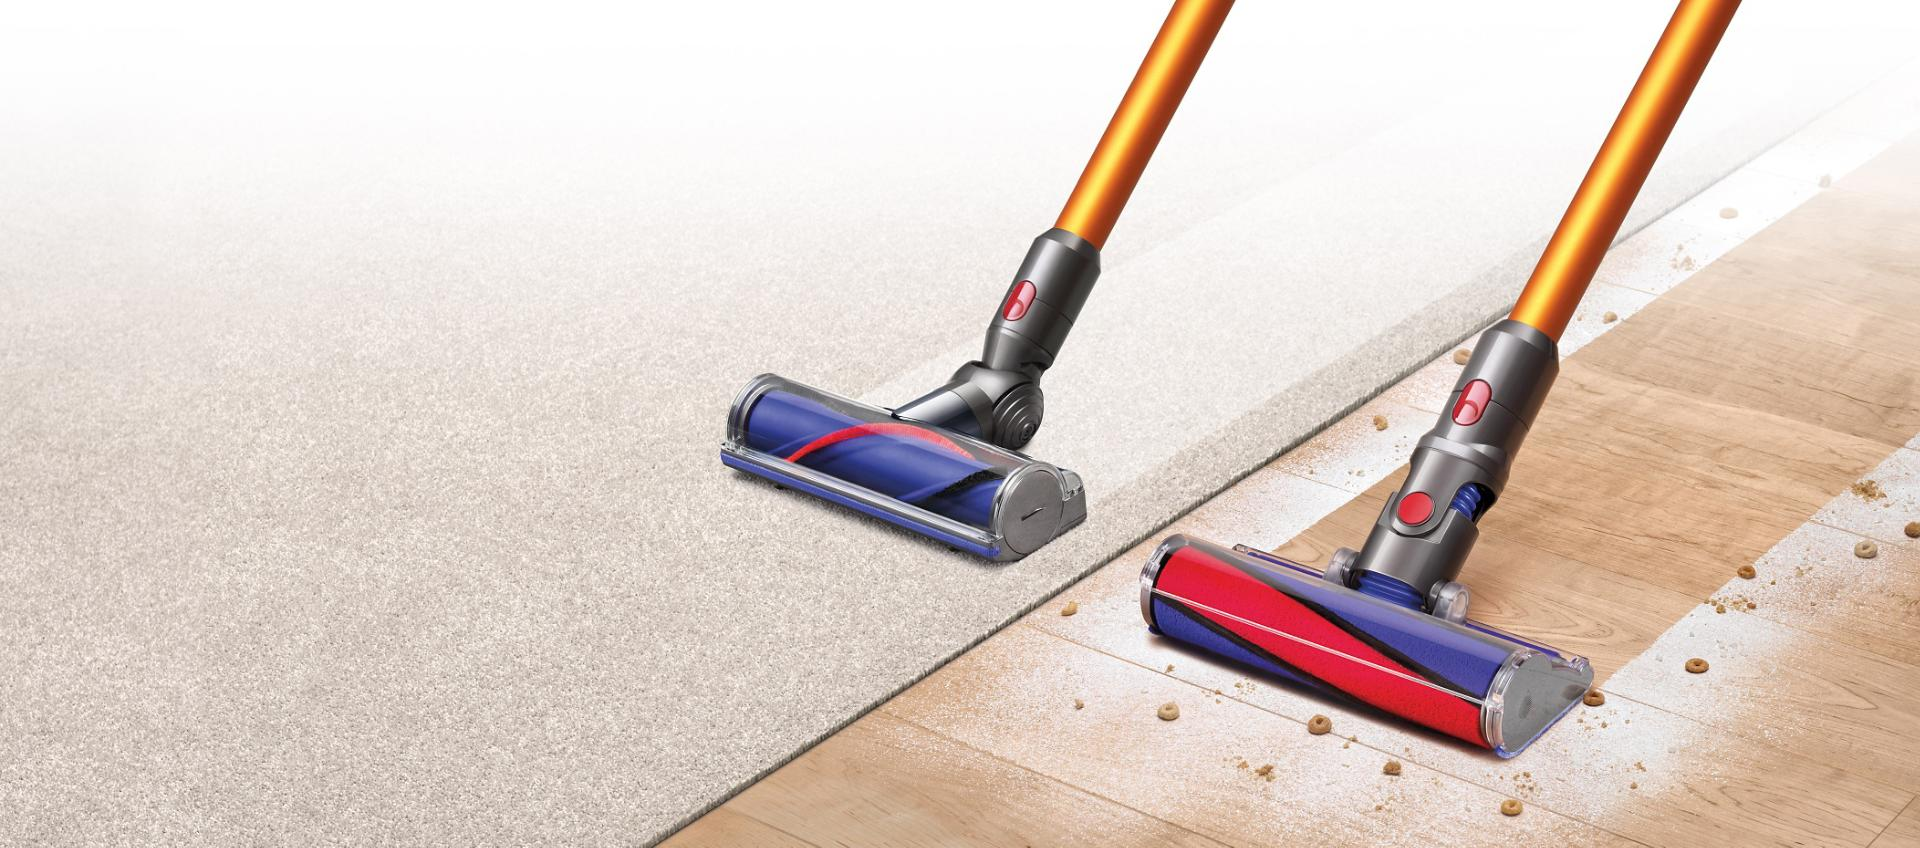 Dyson V8ᵀᴹ Cord Free Vacuum Cleaners Dyson India